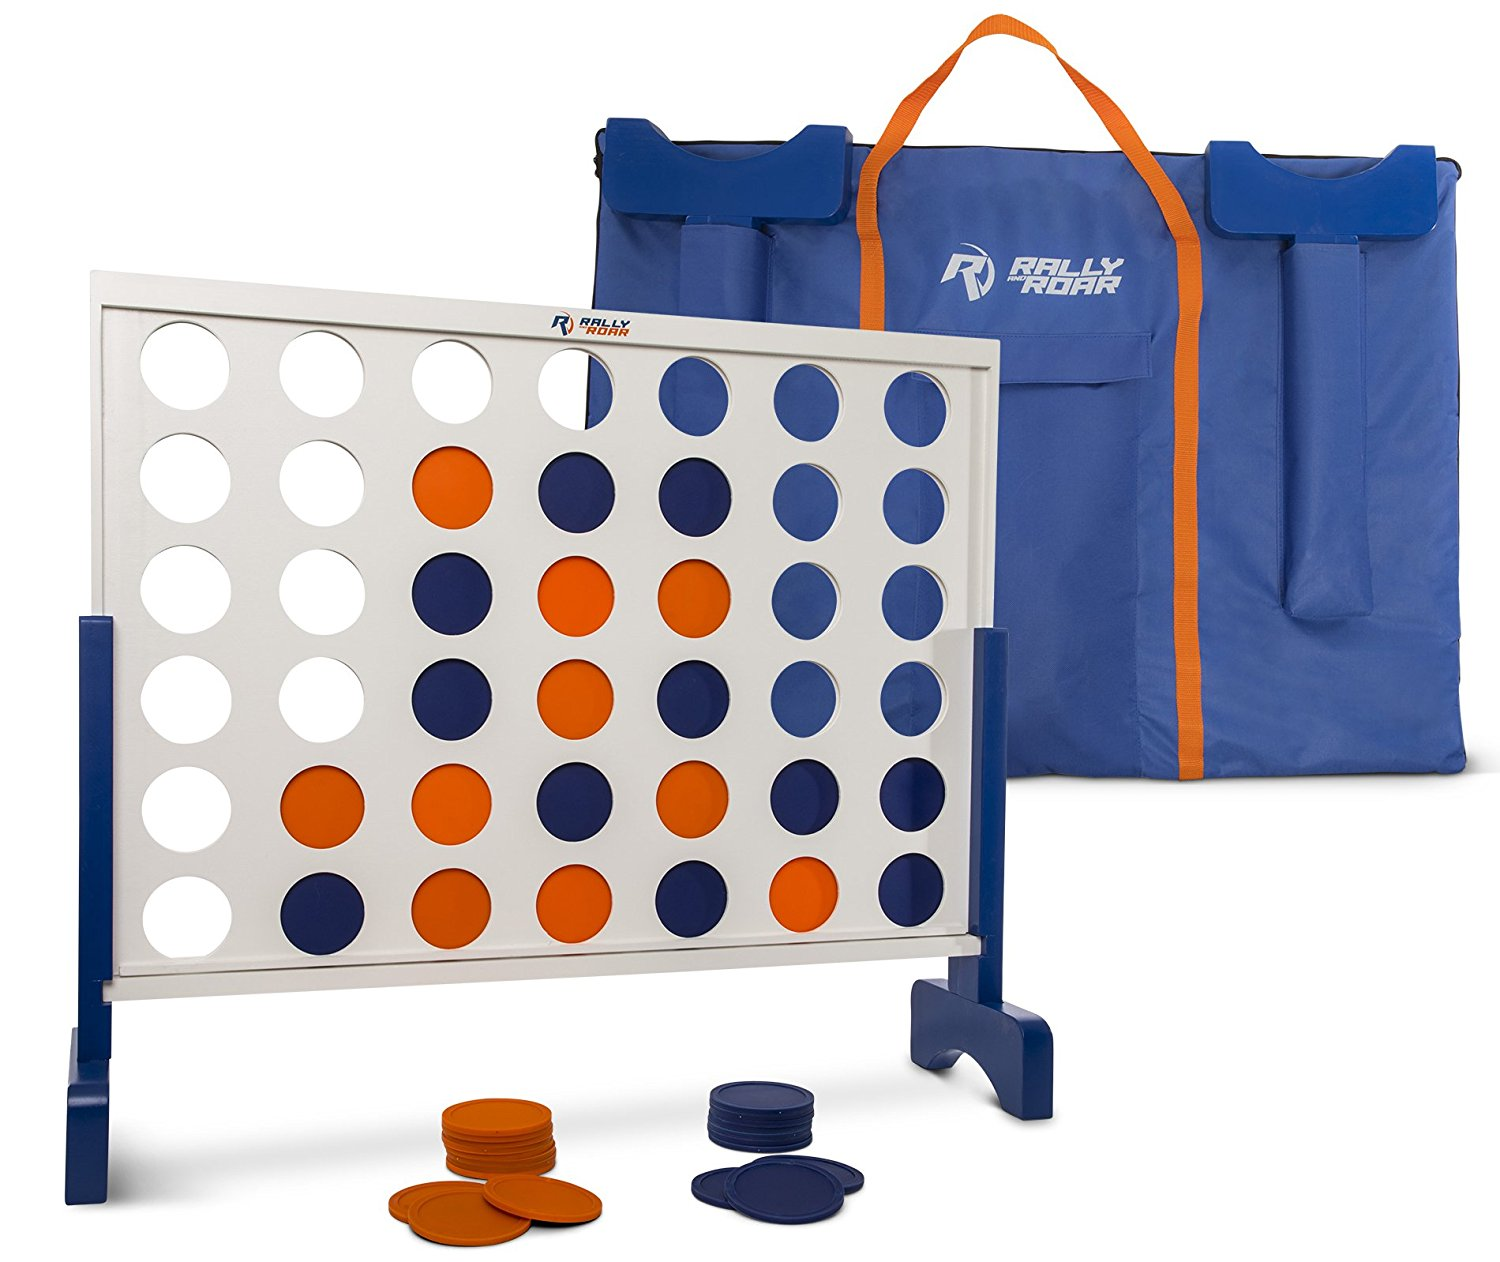 cheap connect 4 game